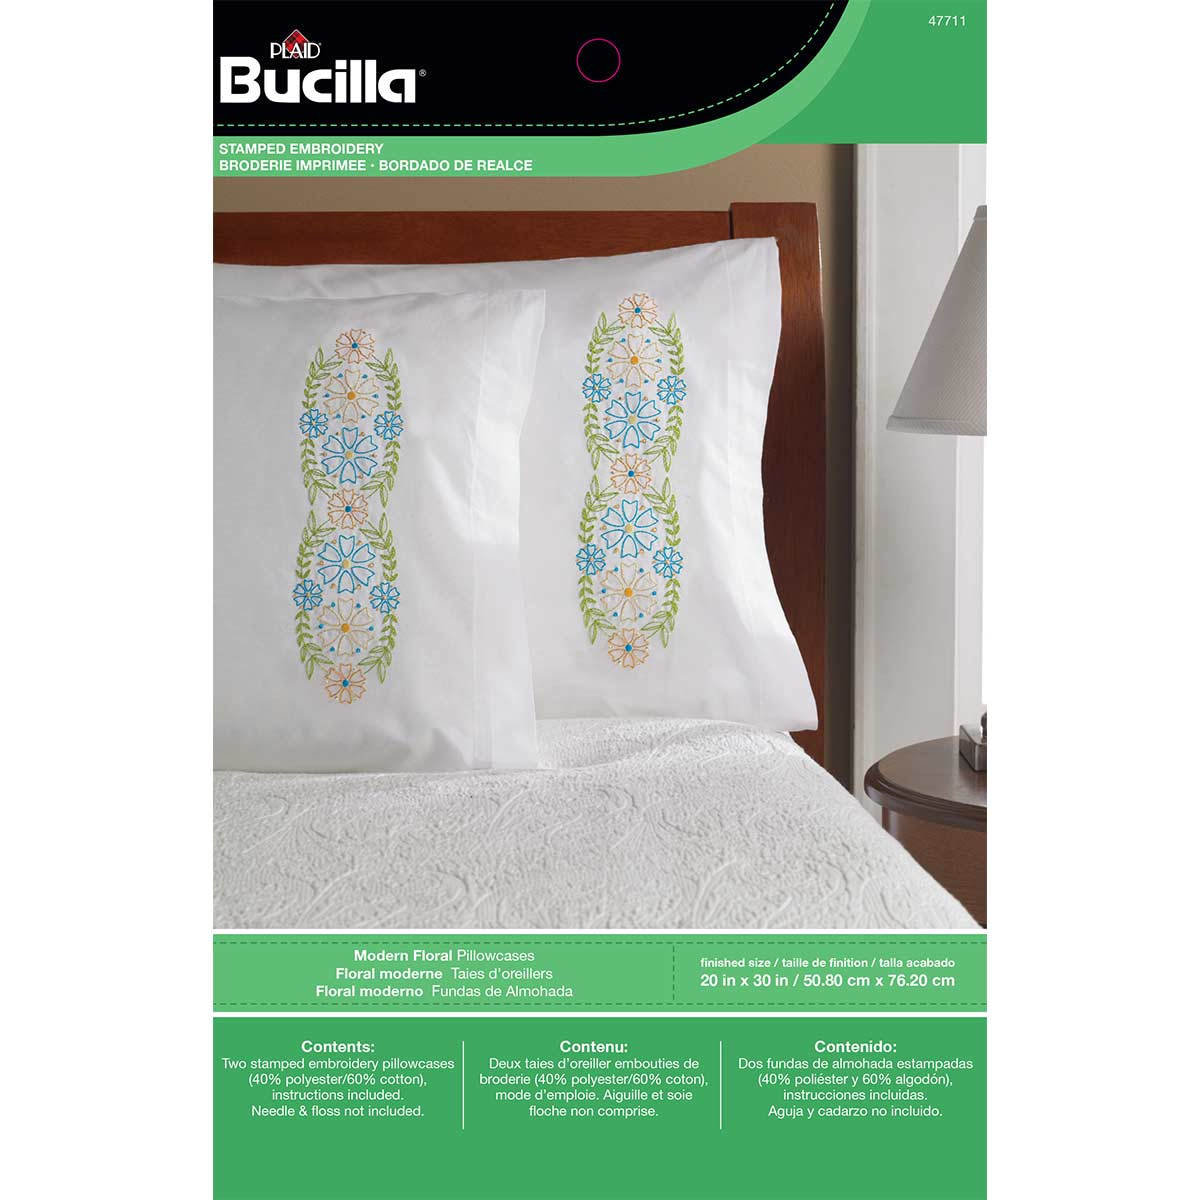 Bucilla ® Stamped Cross Stitch & Embroidery - Pillowcase Pairs - Modern Floral